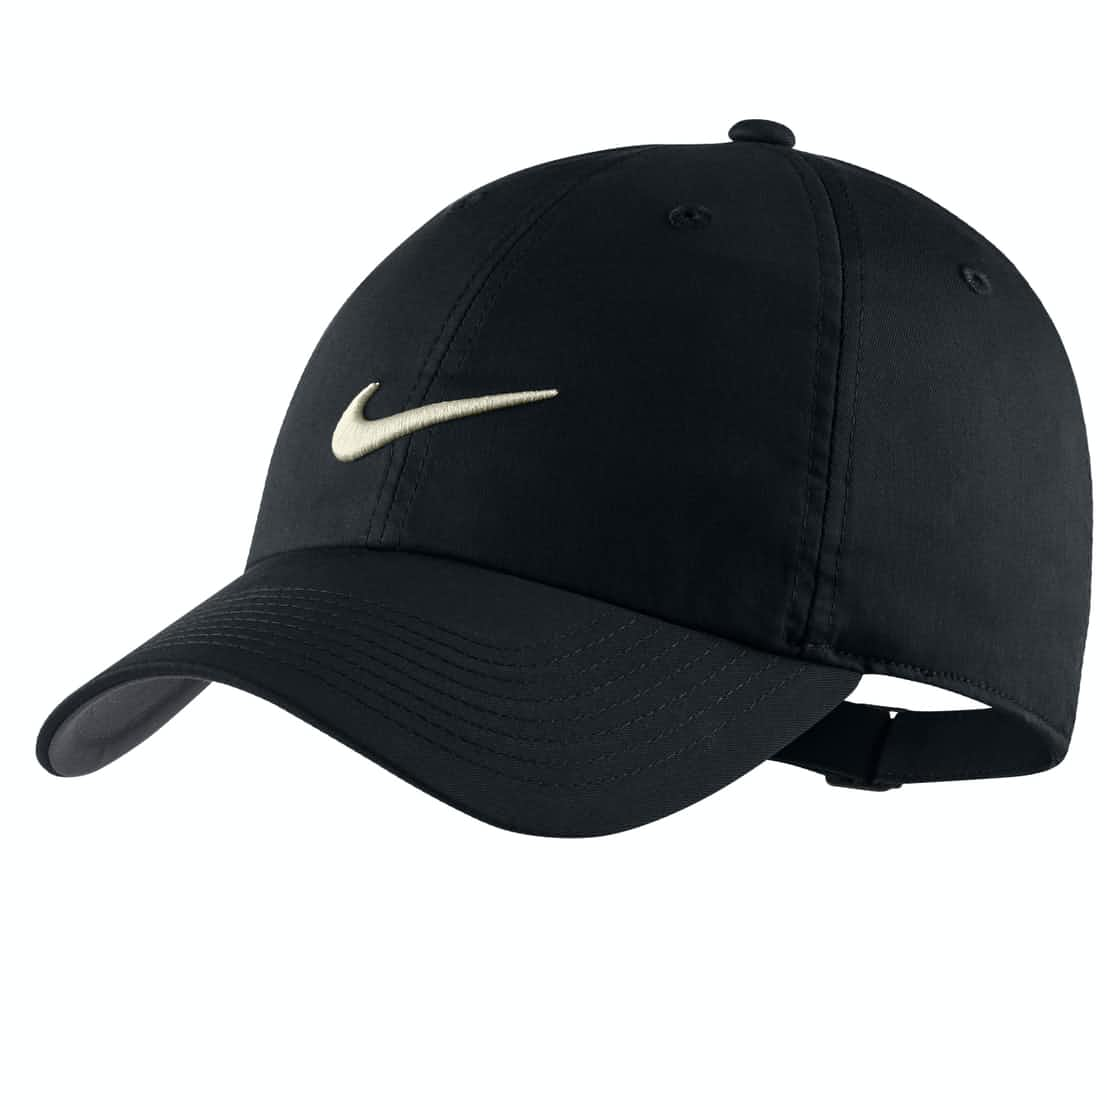 Heritage 86 Player Cap Black/Anthracite - AW19